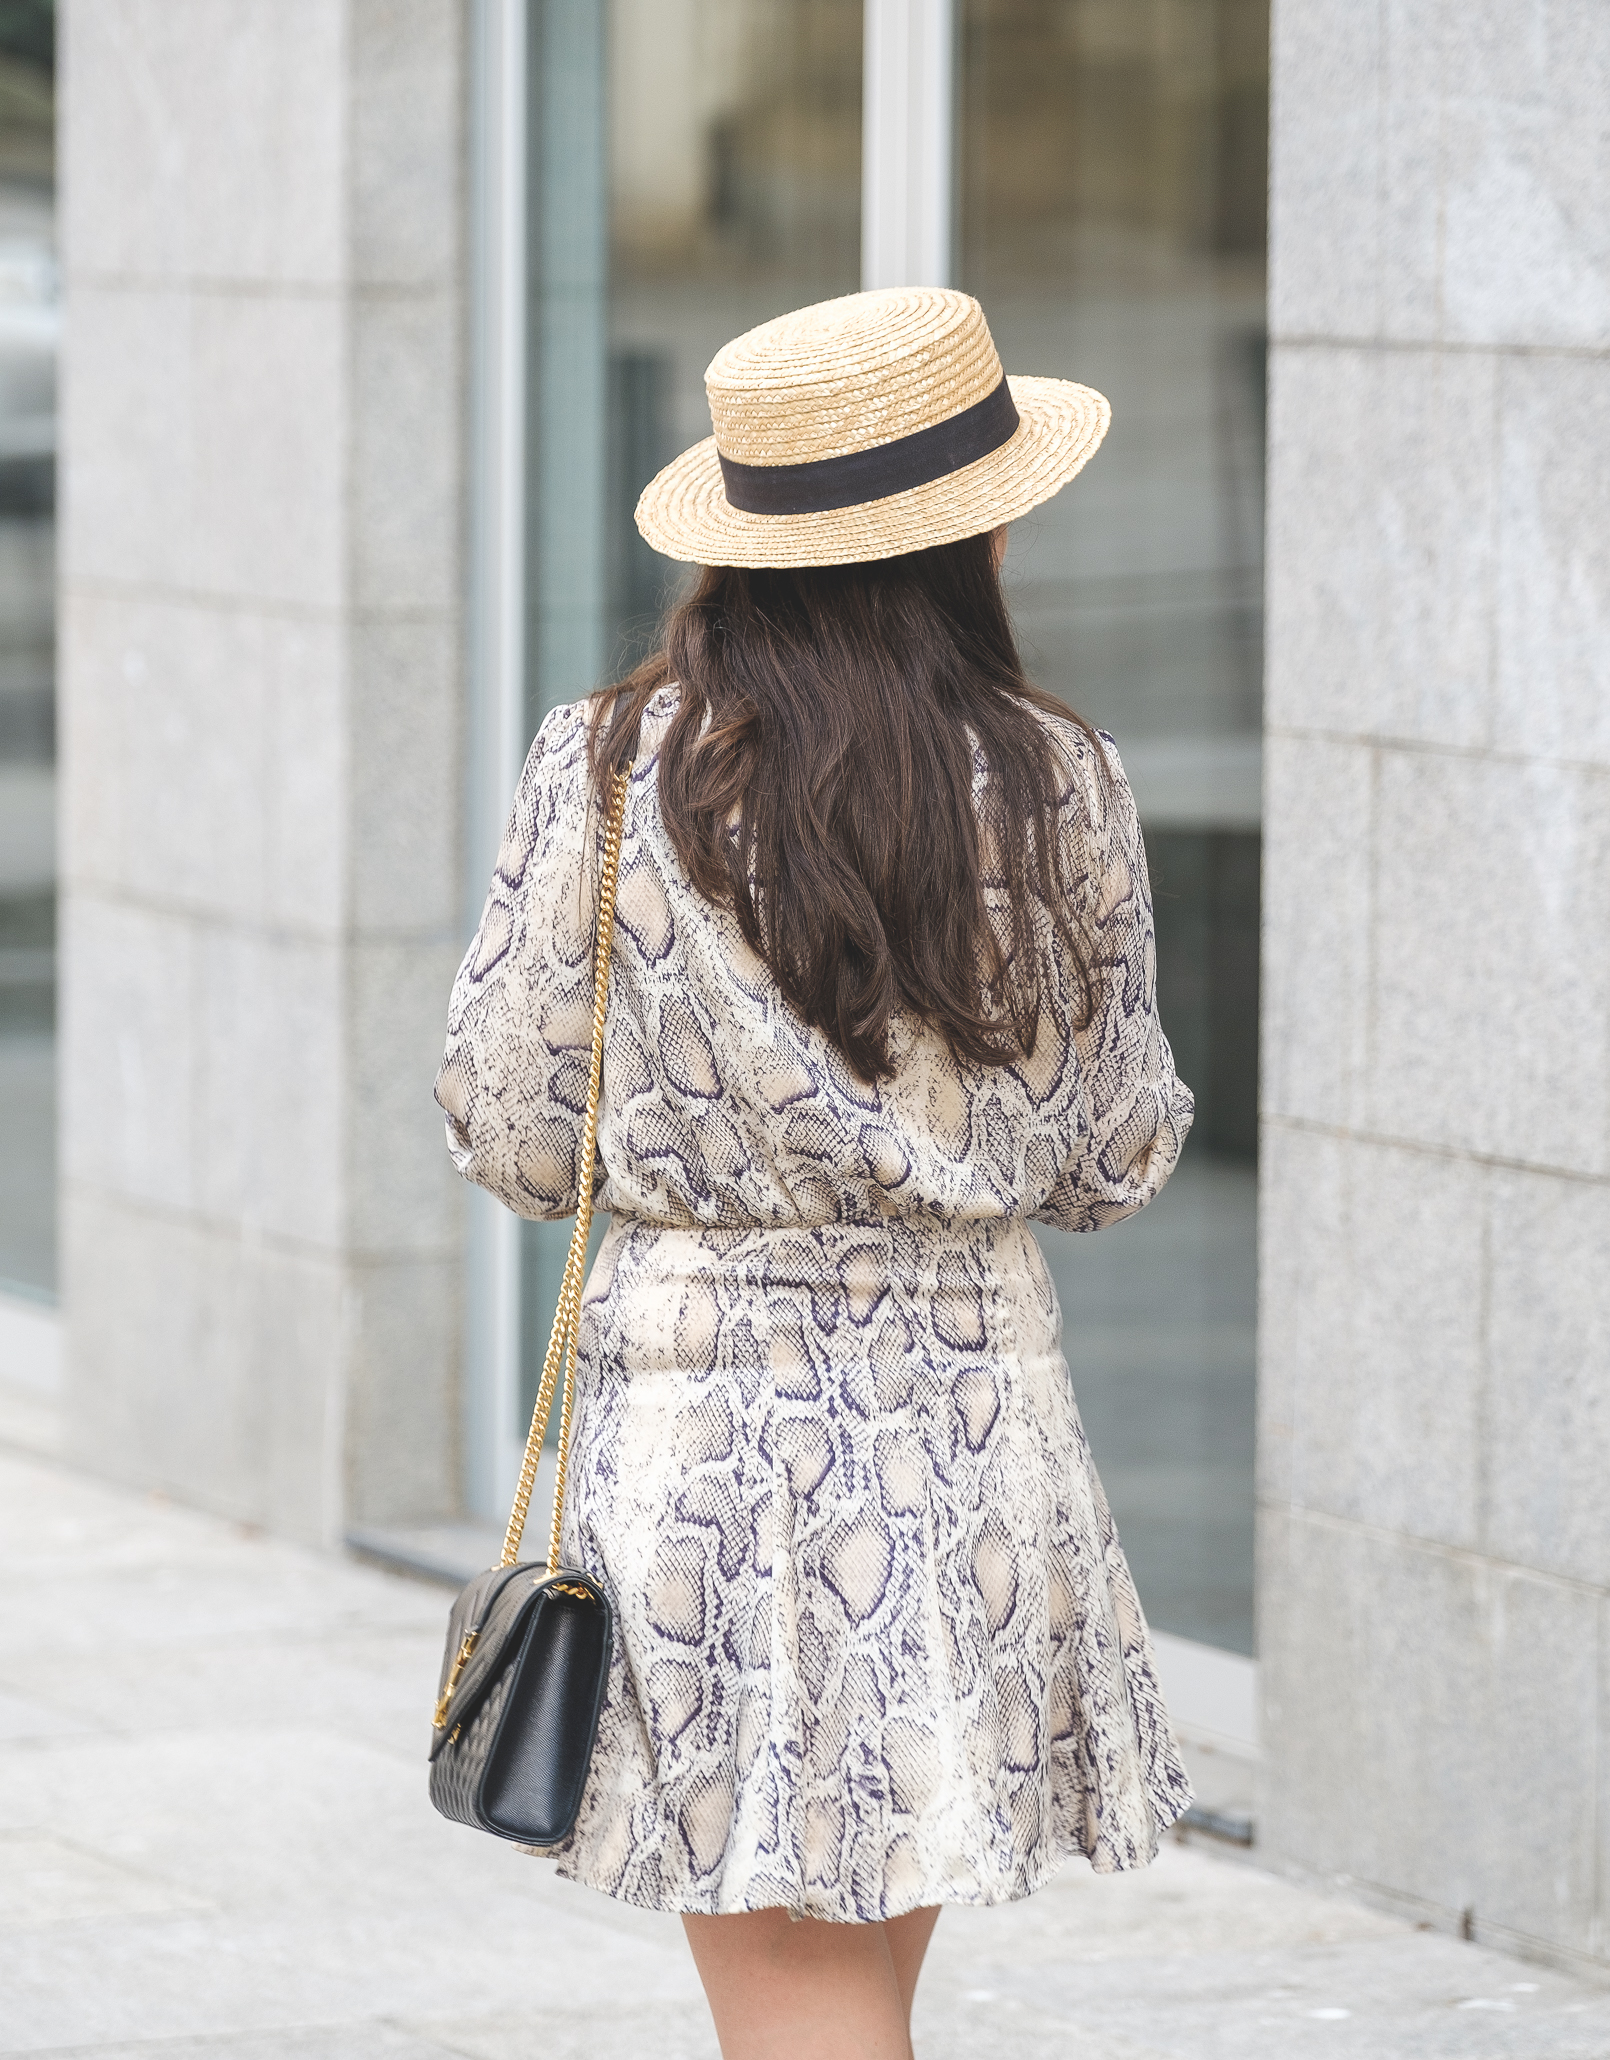 Le Fashionaire satin zara snake print dress envelope ysl bag black gold straw stradivarius hat 6408 EN satin zara snake print dress envelope ysl bag black gold straw stradivarius hat 6408 EN